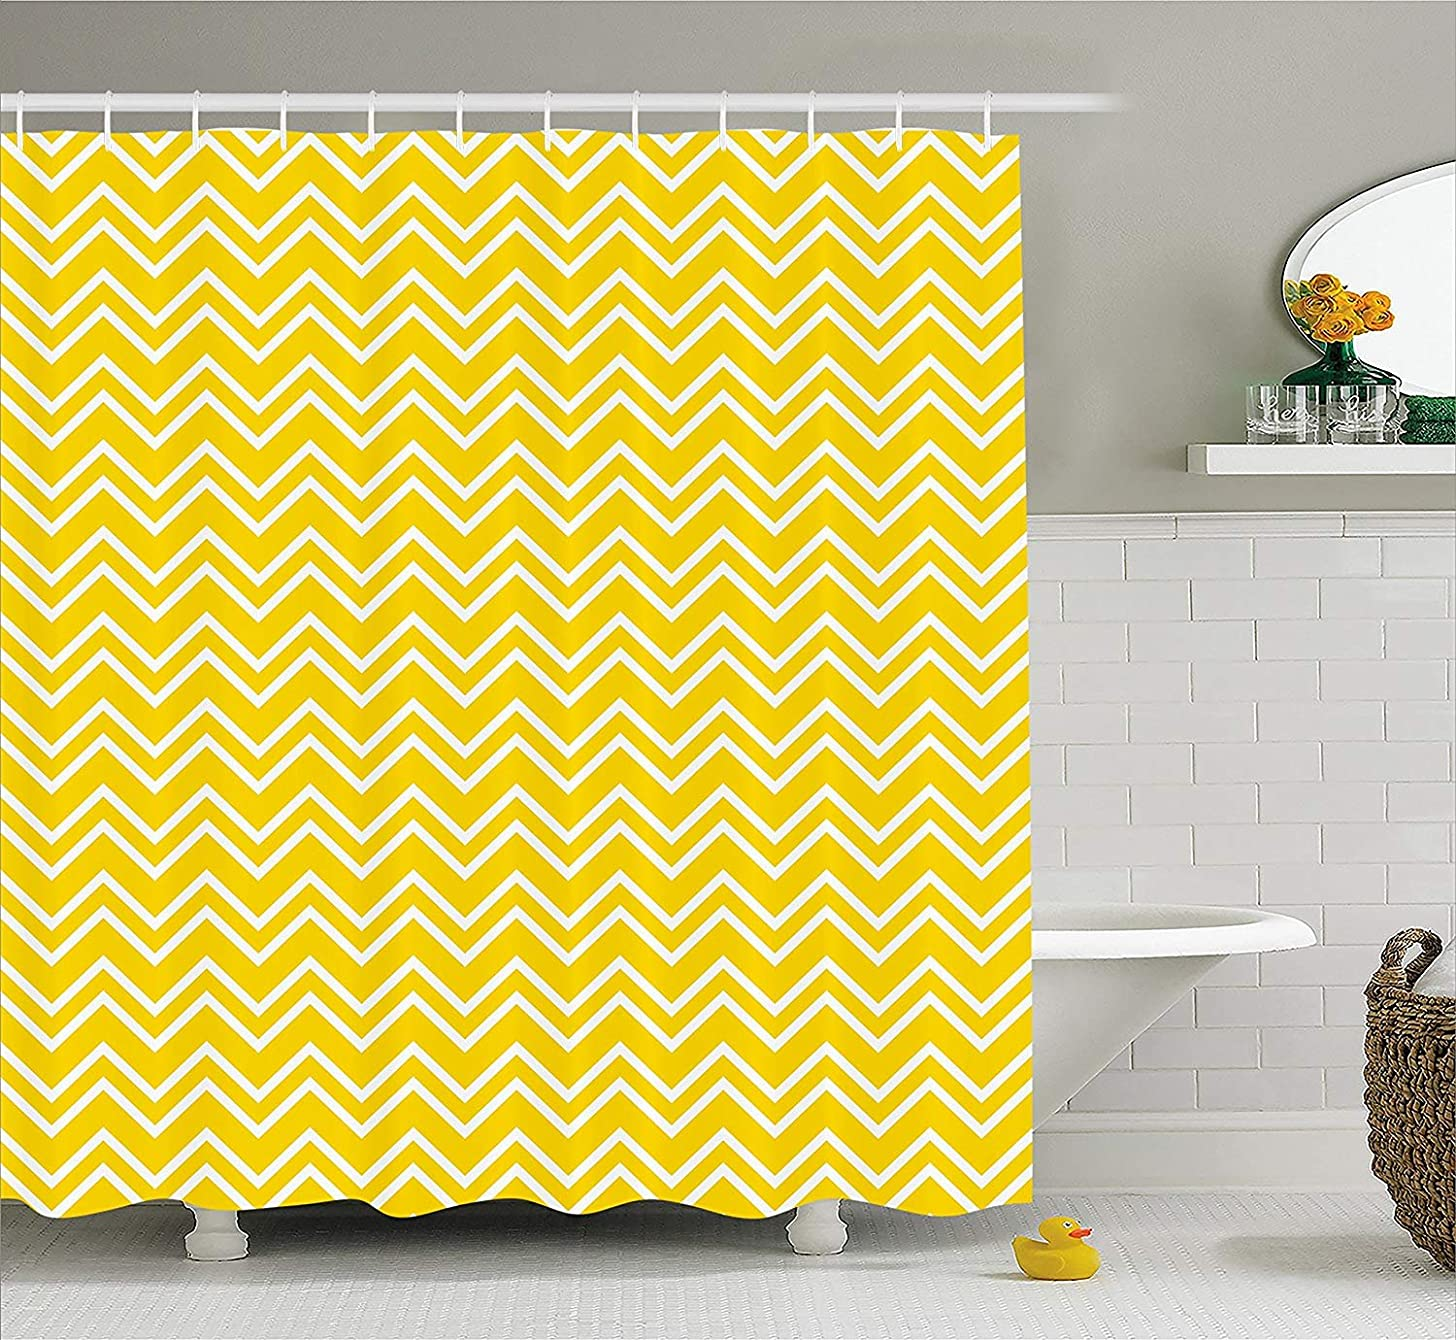 Afagahahs Yellow Decor Shower Curtain Zig Zag Chevron Pattern in Yellow and White Modern Inspired Art Print Fabric Bathroom Decor Set with Hooks Yellow and White